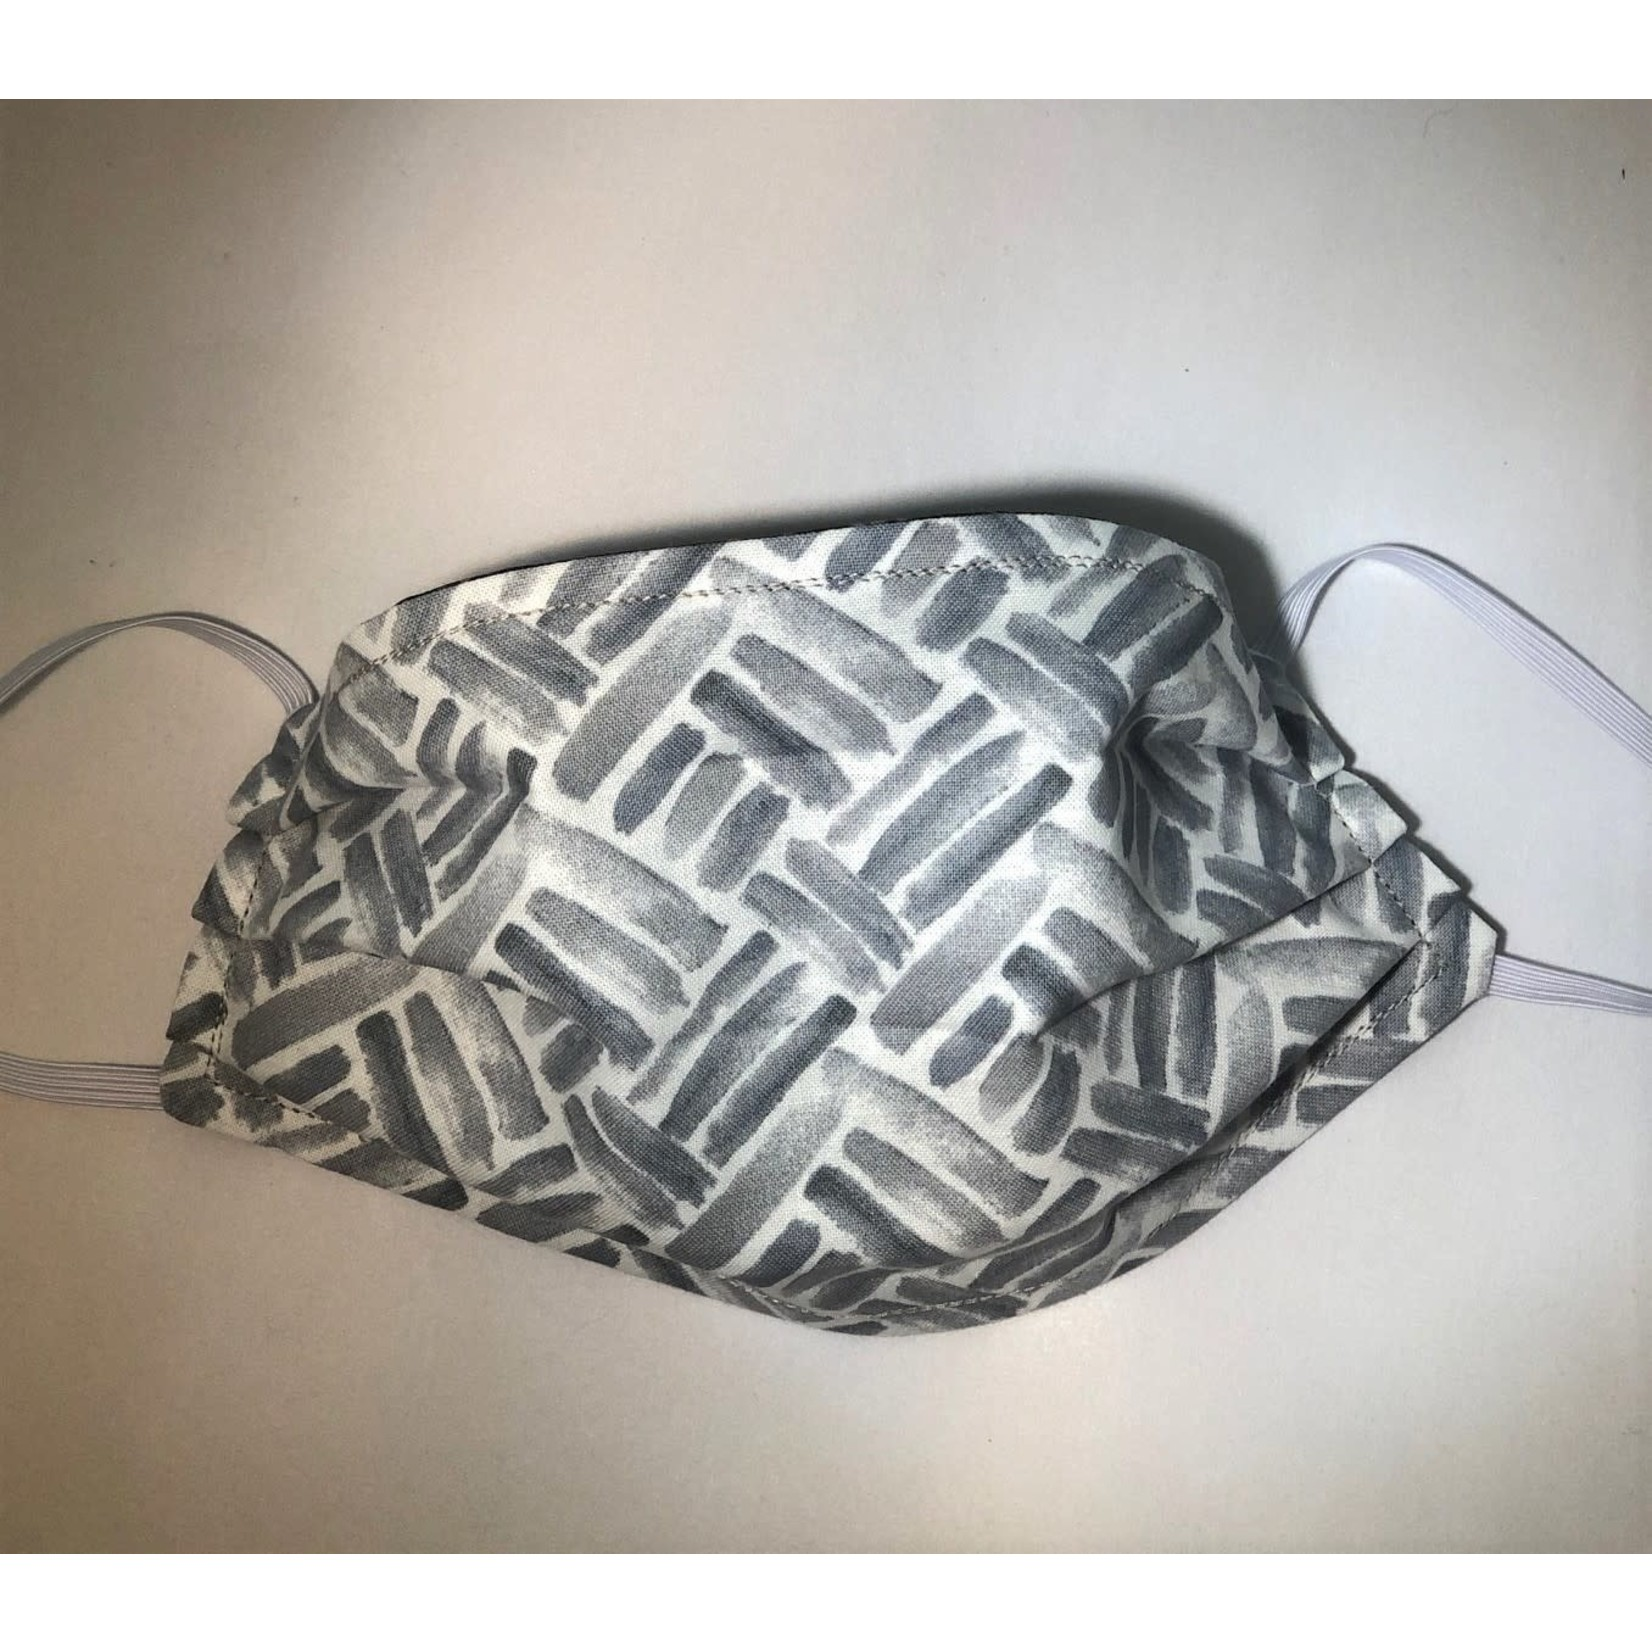 Face Cover - Reversible Grey Parquet/Black Dots - Adult Med